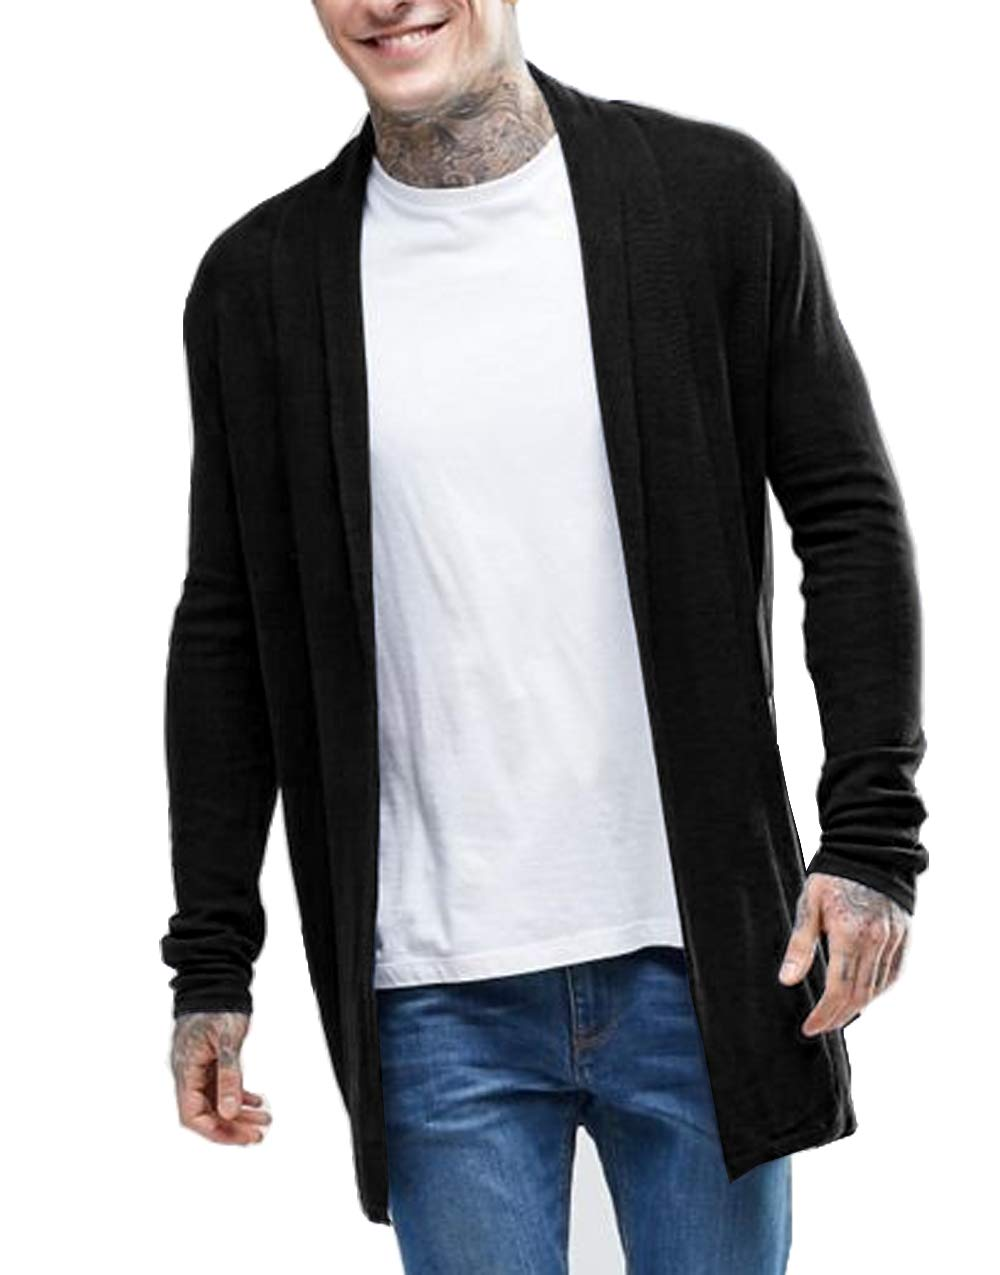 Simbama Men's Knitted Cardigan Sweater Slim Fit Casual Longline Open Front Cape Cloak